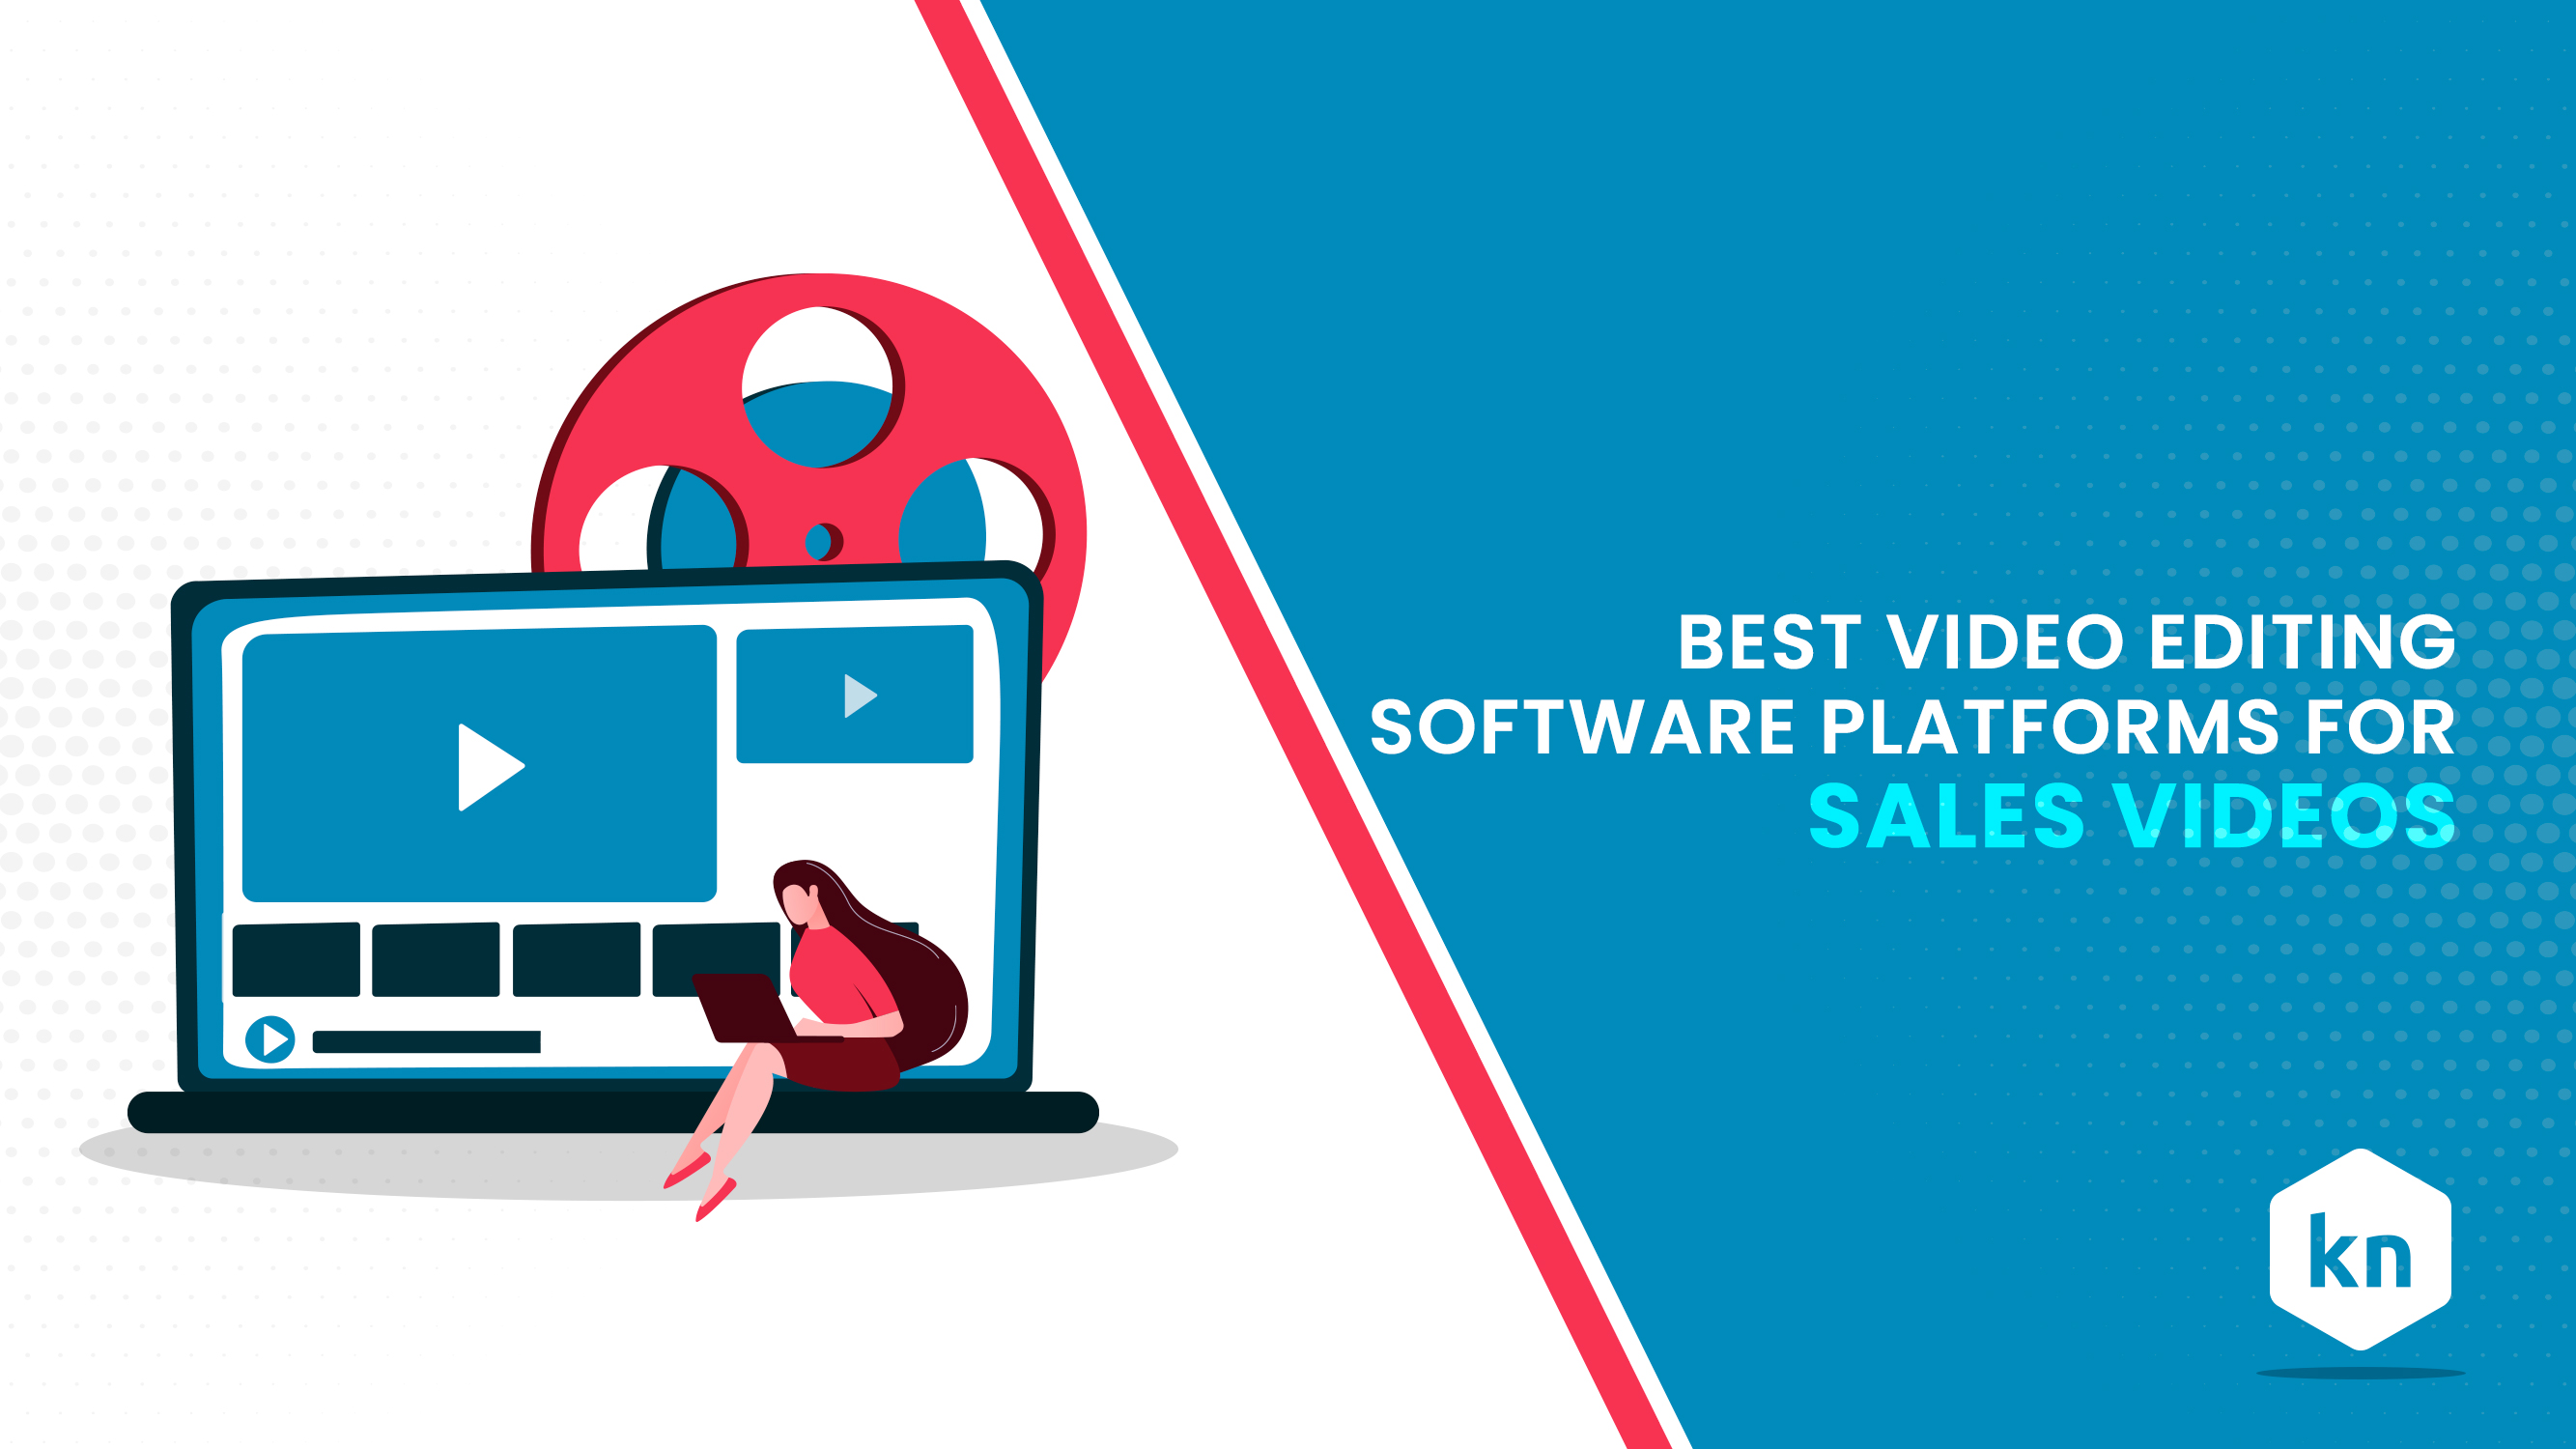 Best Video Editing Software Platforms For Sales Videos